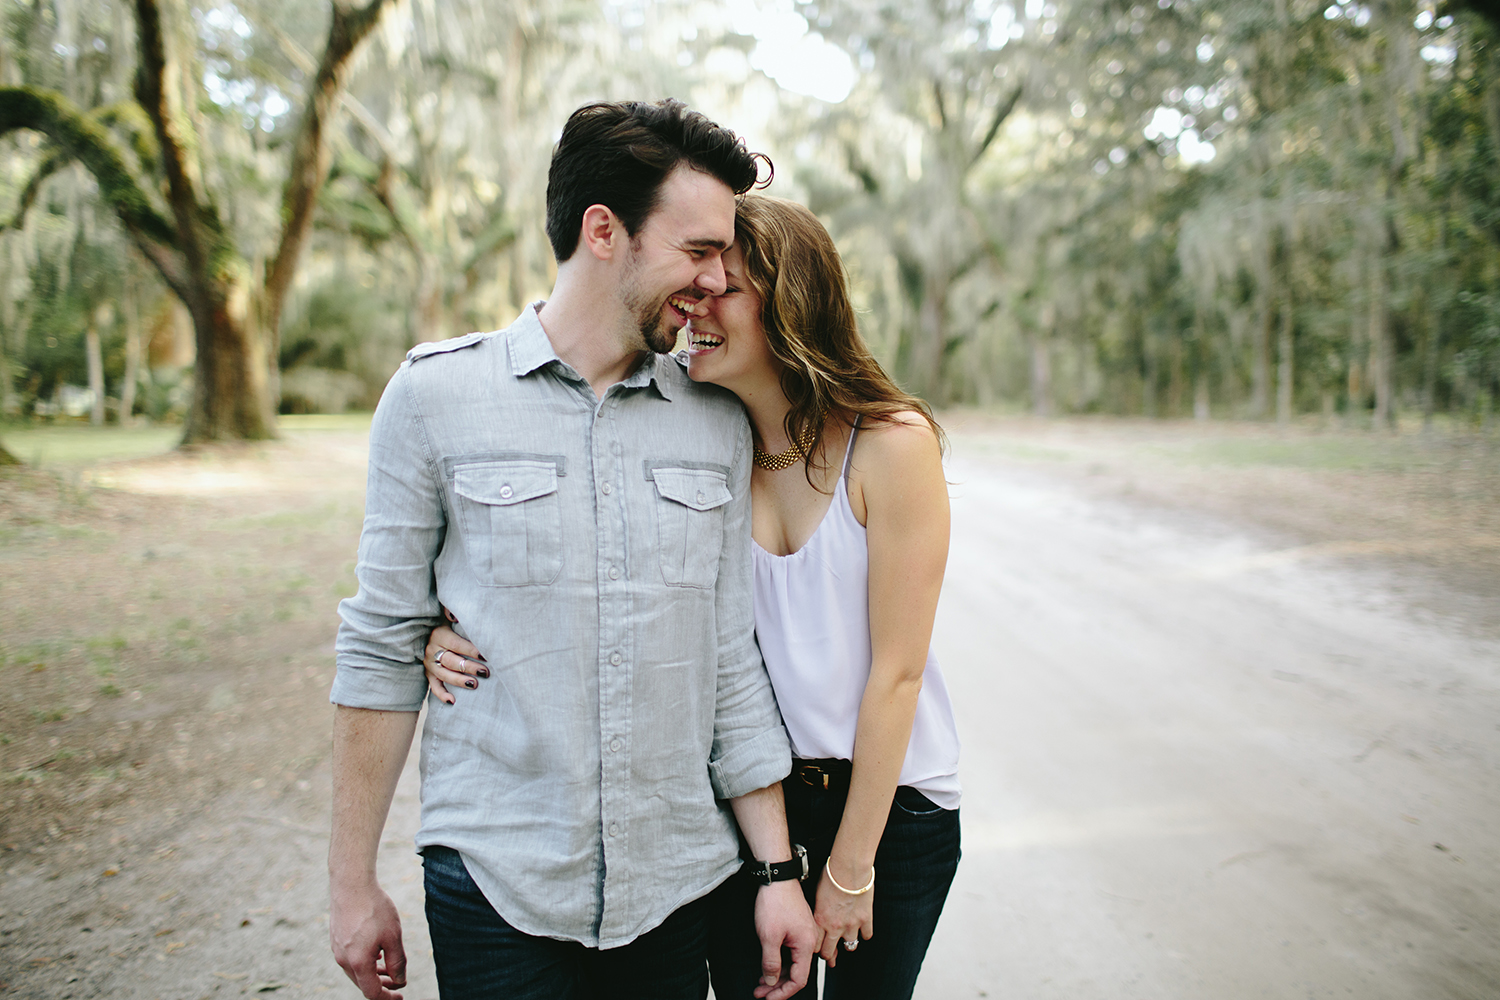 karliwillengaged - alicia white photography-102.jpg